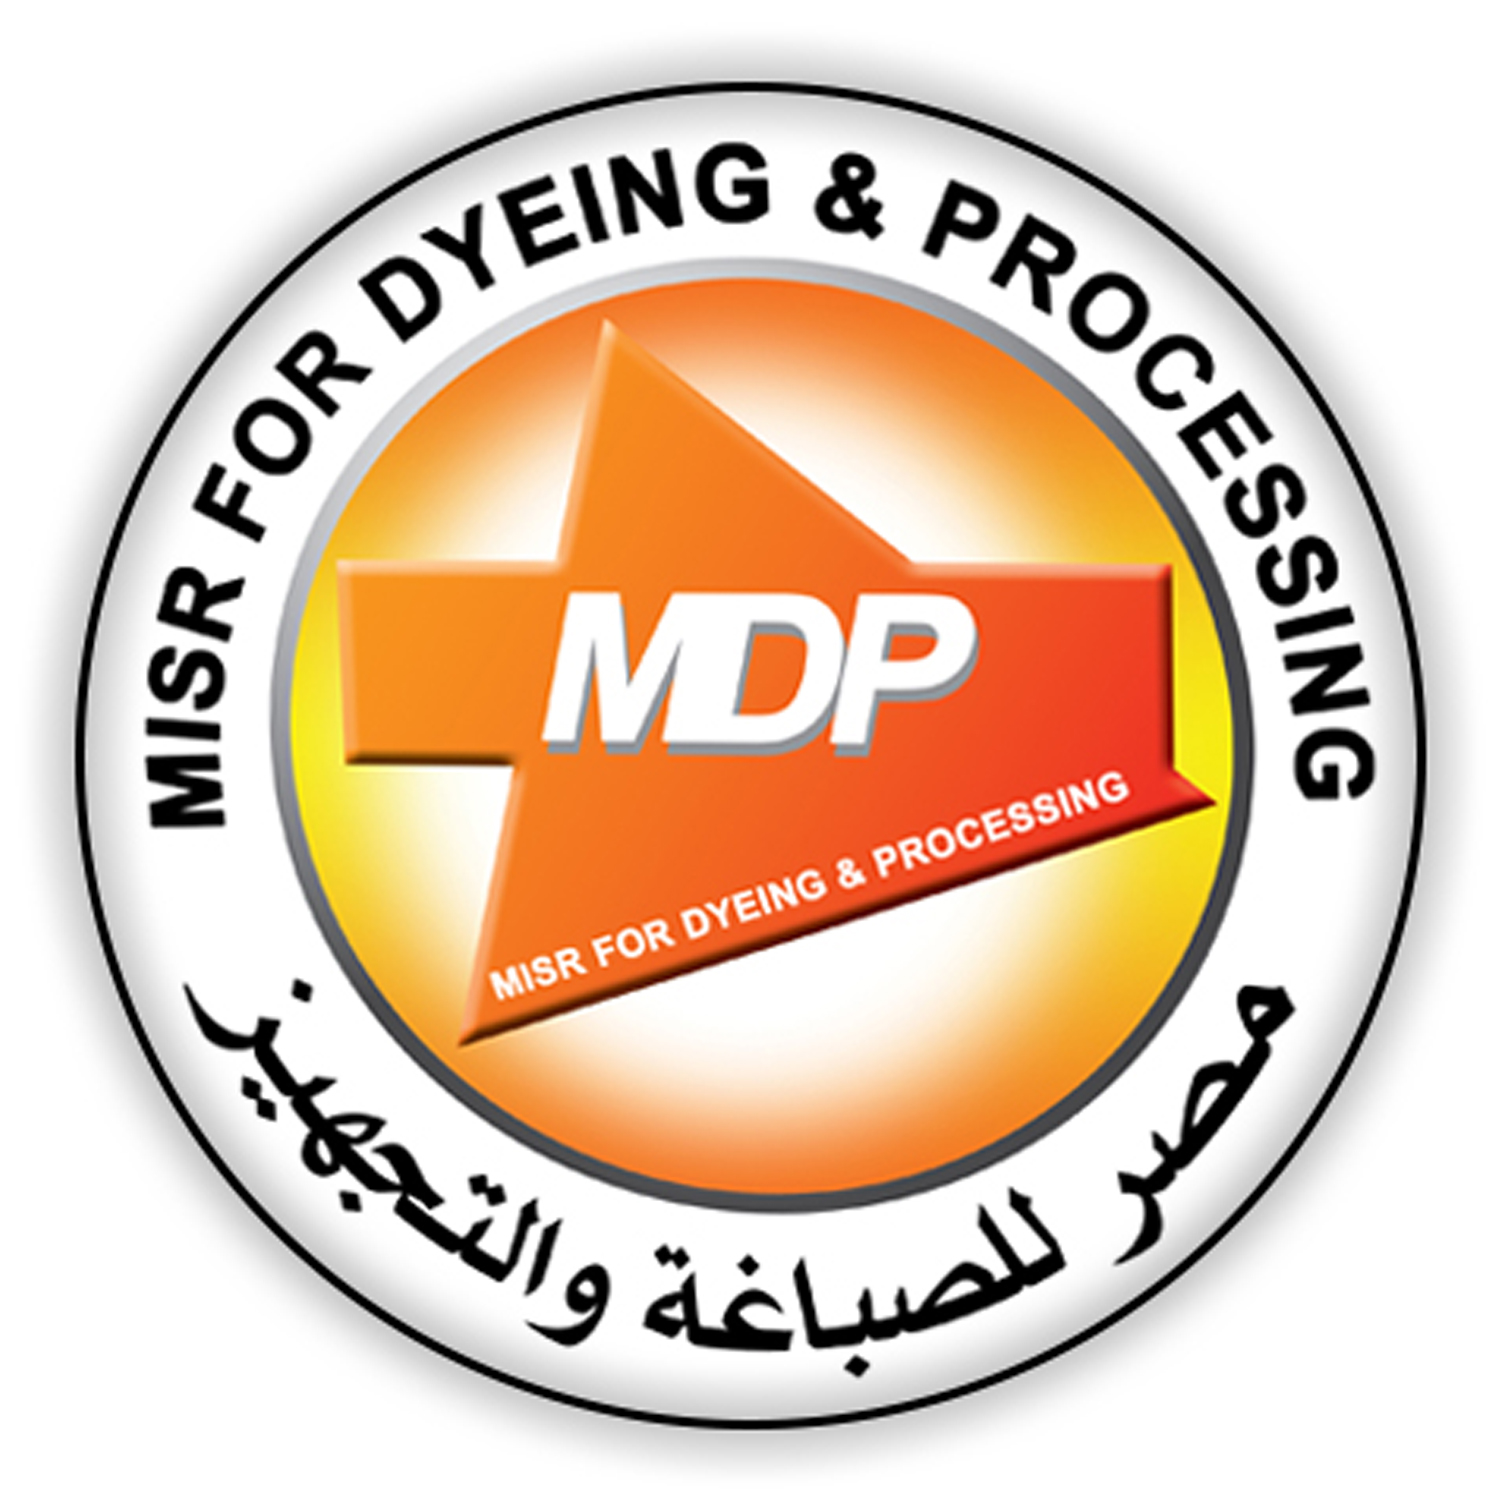 Misr For Dyeing and Processing